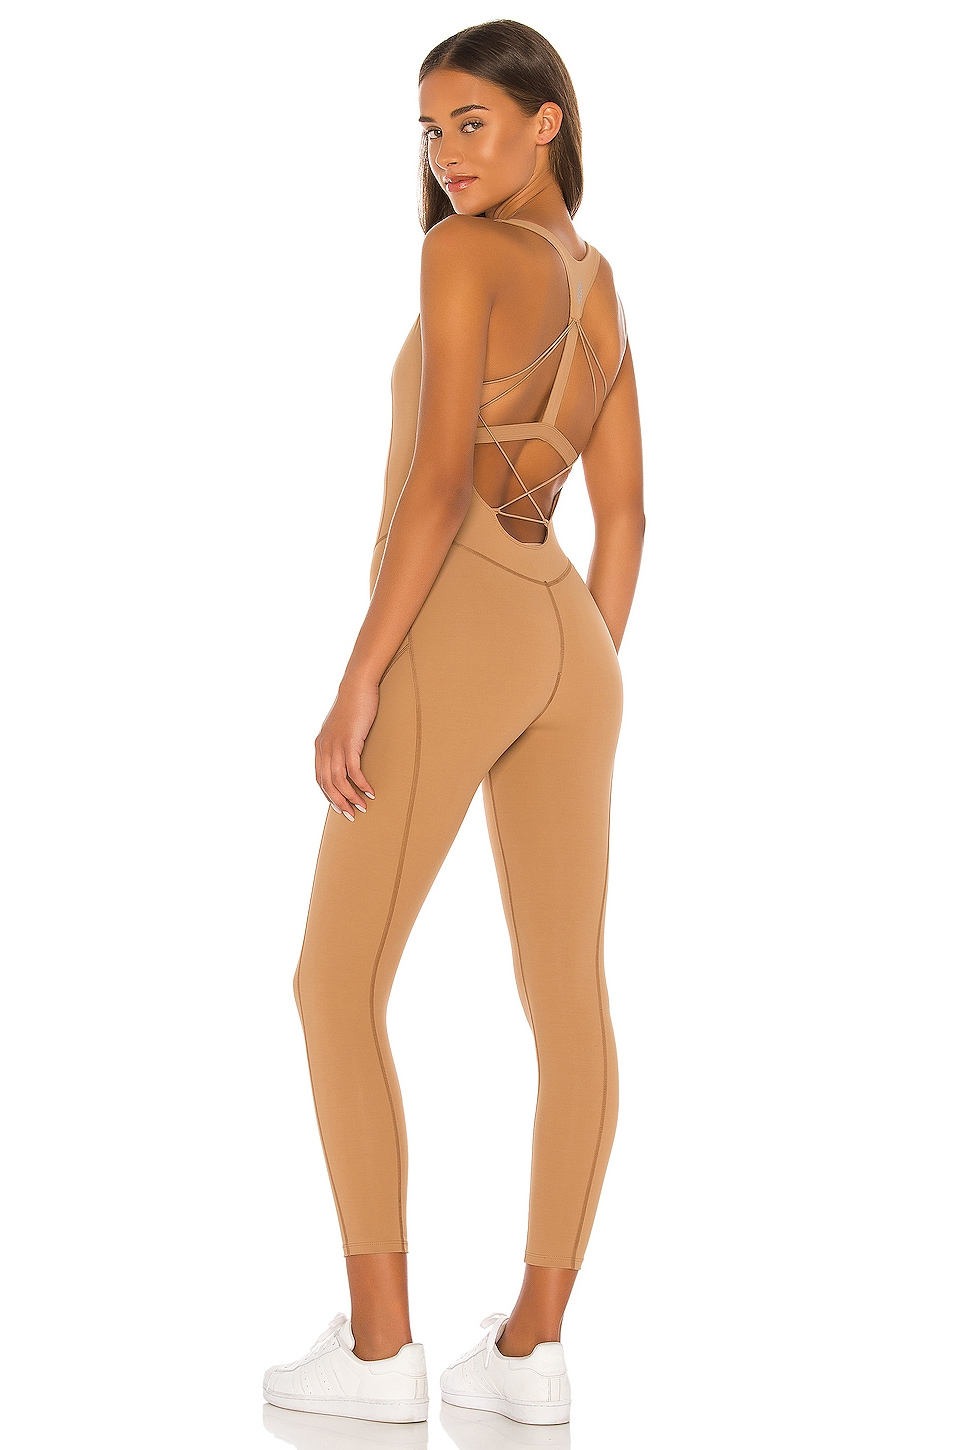 Free People X FP Movement Nirvana Now Onepiece in Khaki